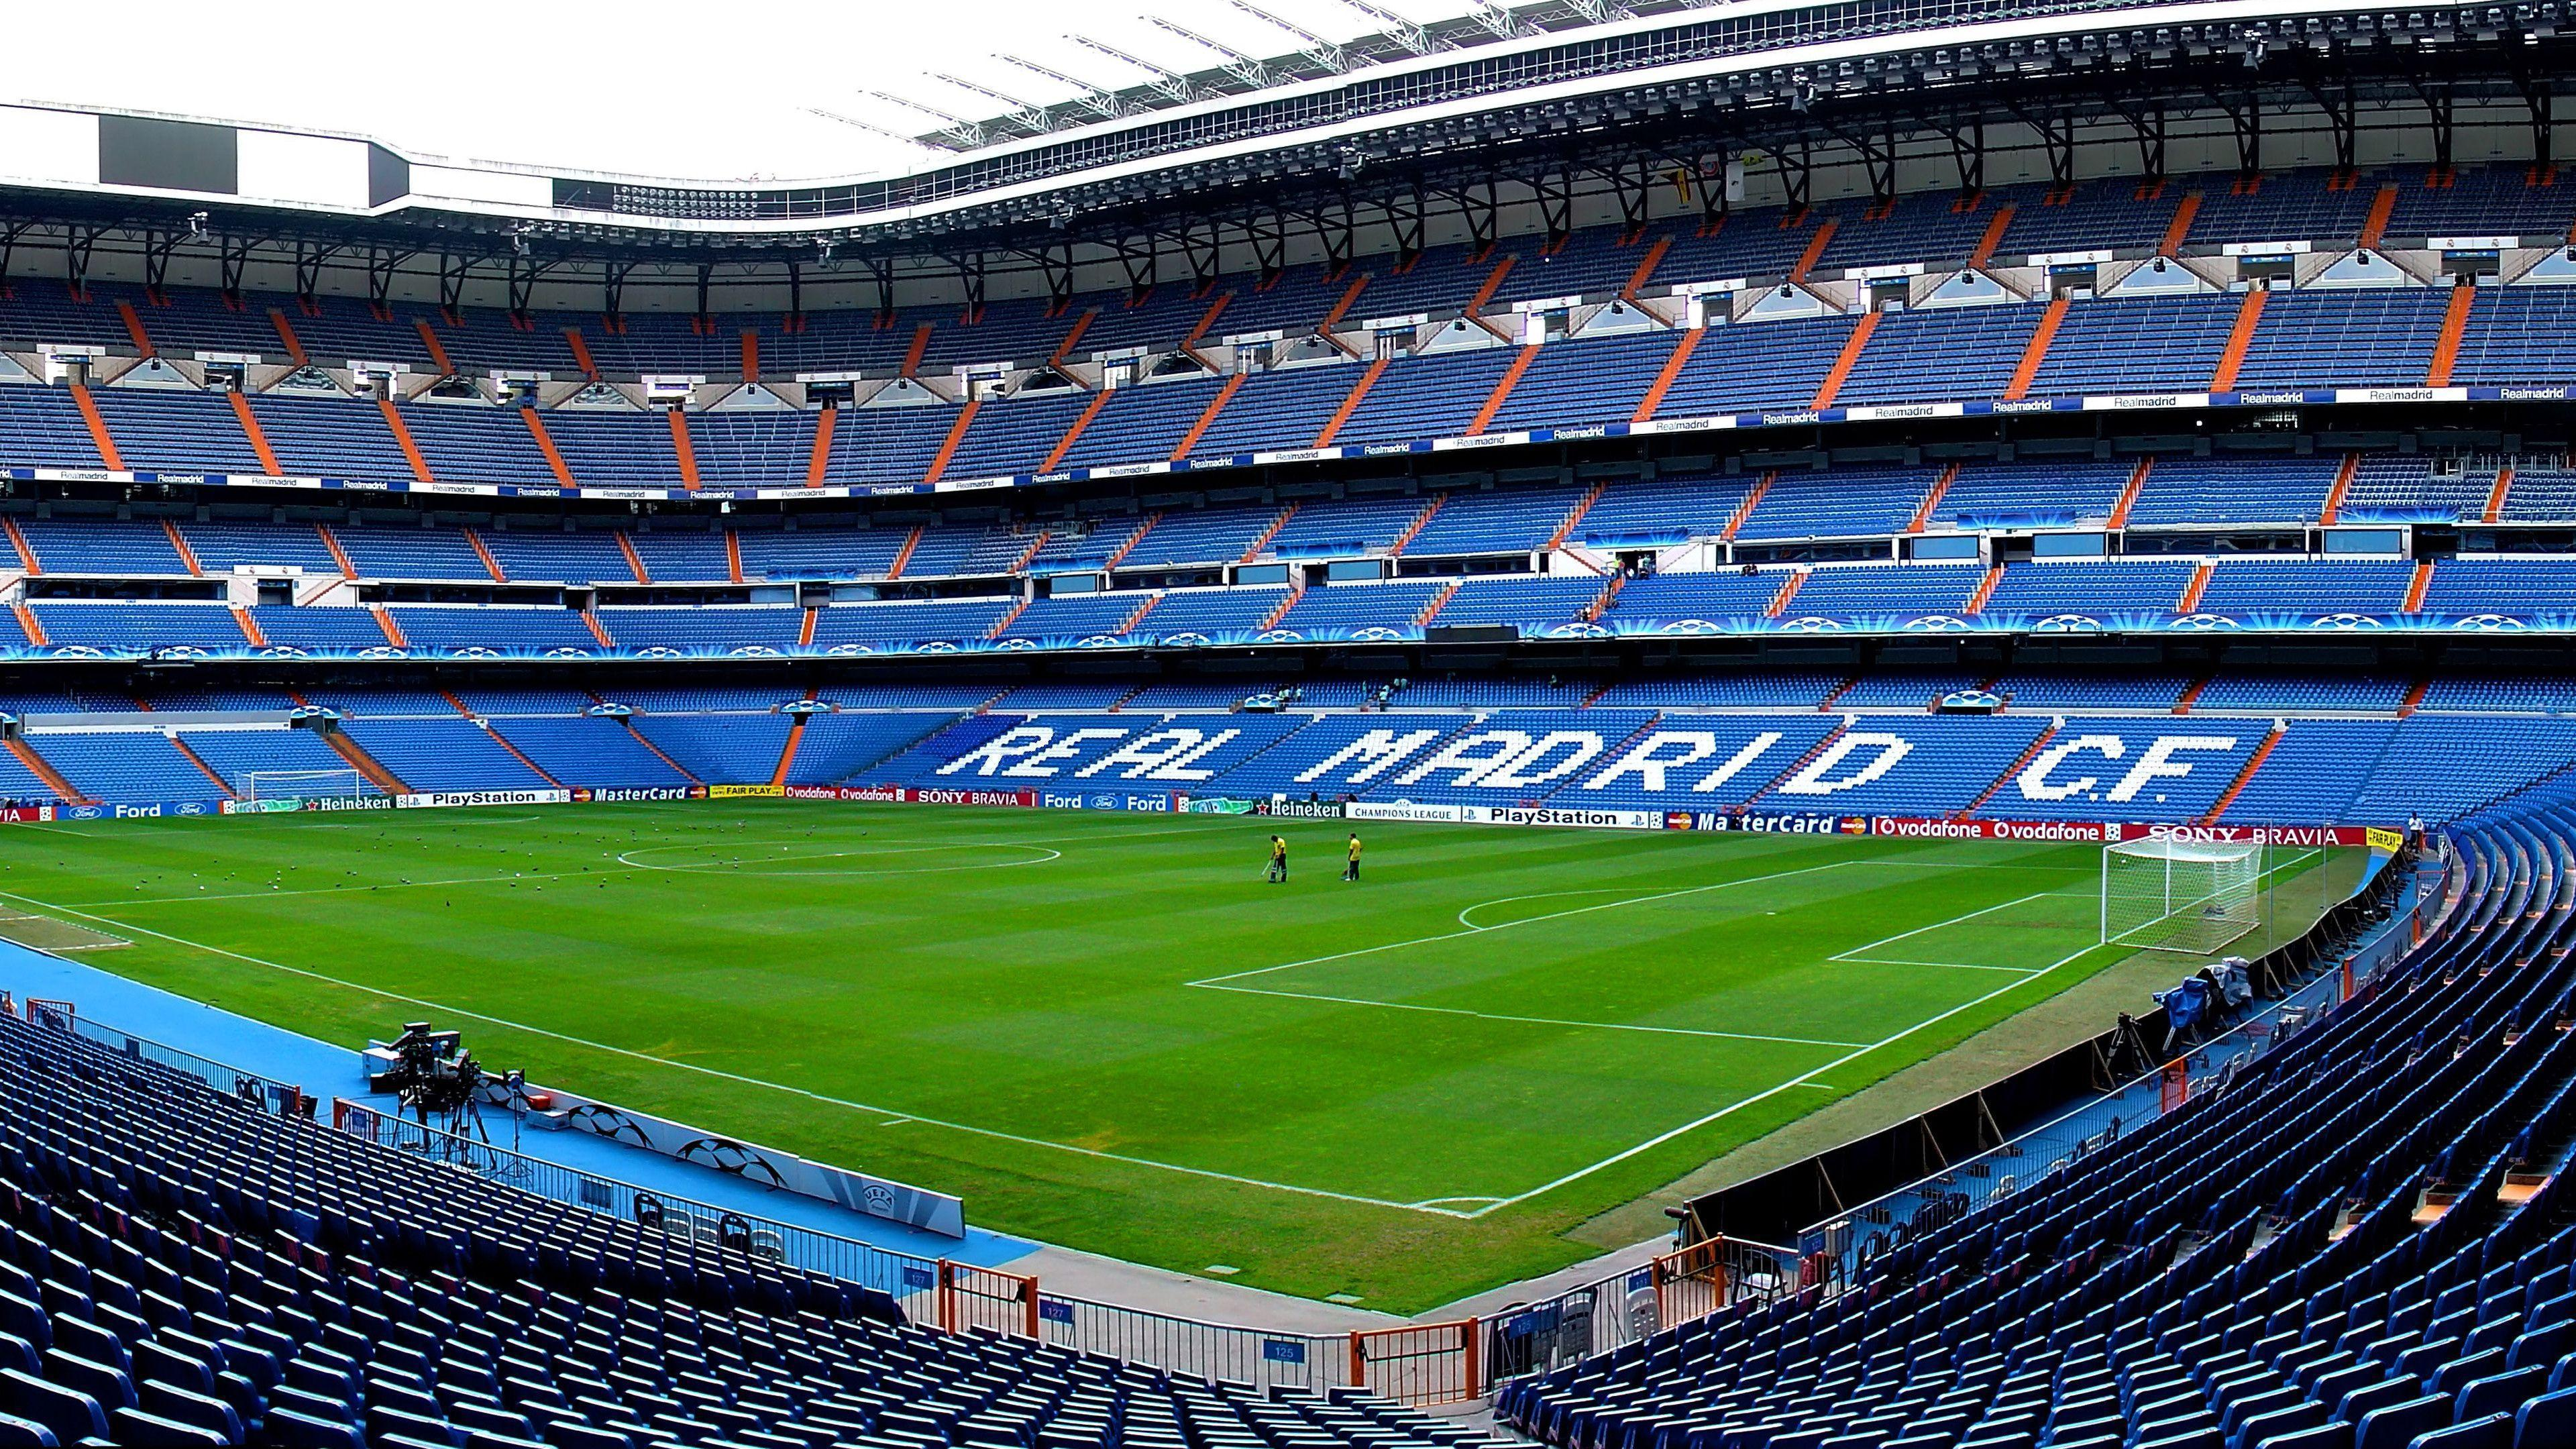 Real Madrid Santiago Bernabeu stadium wallpaper | YouBioit.com